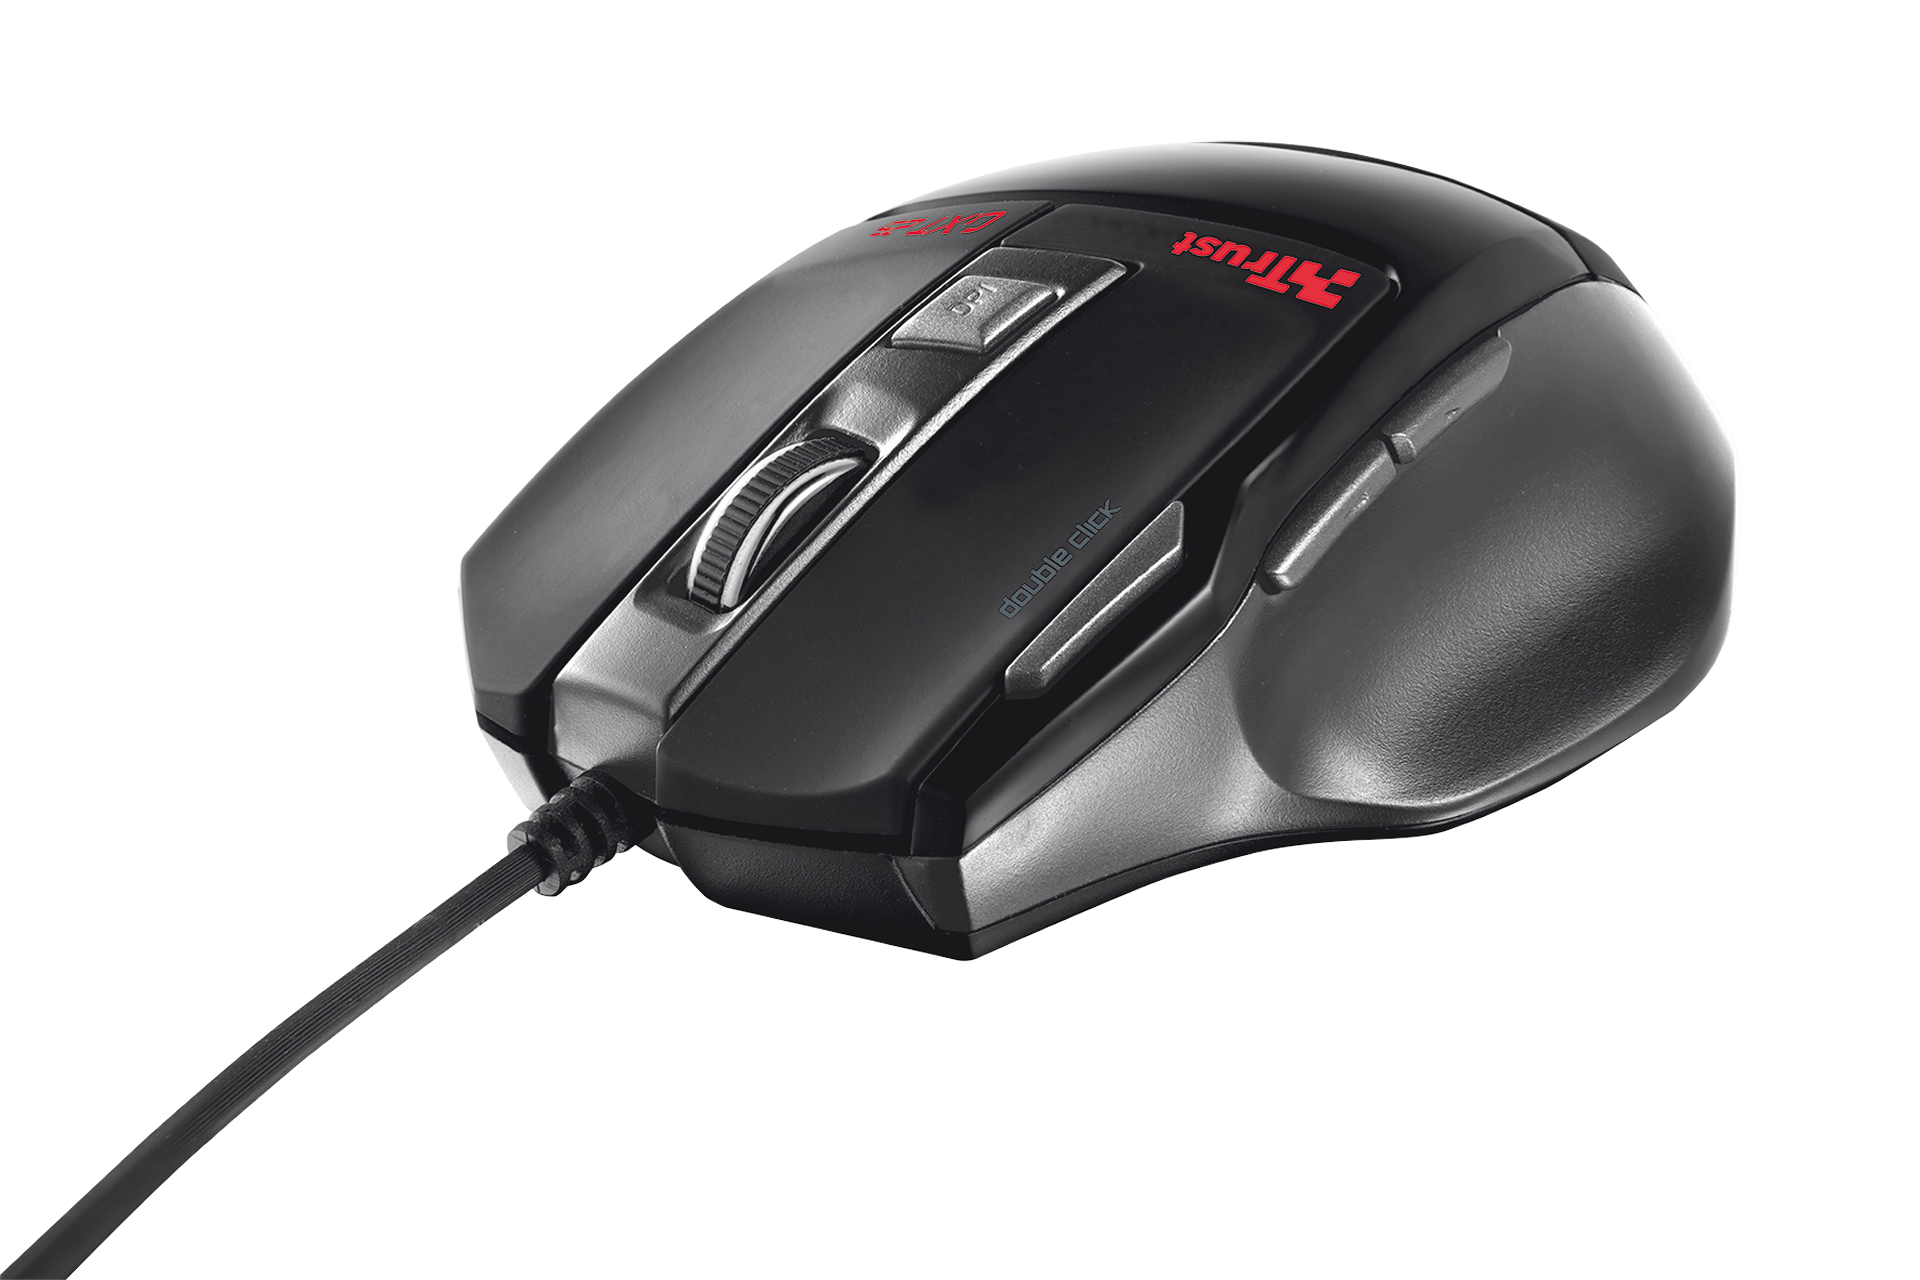 TRUST Myš GXT 25 Gaming Mouse USB